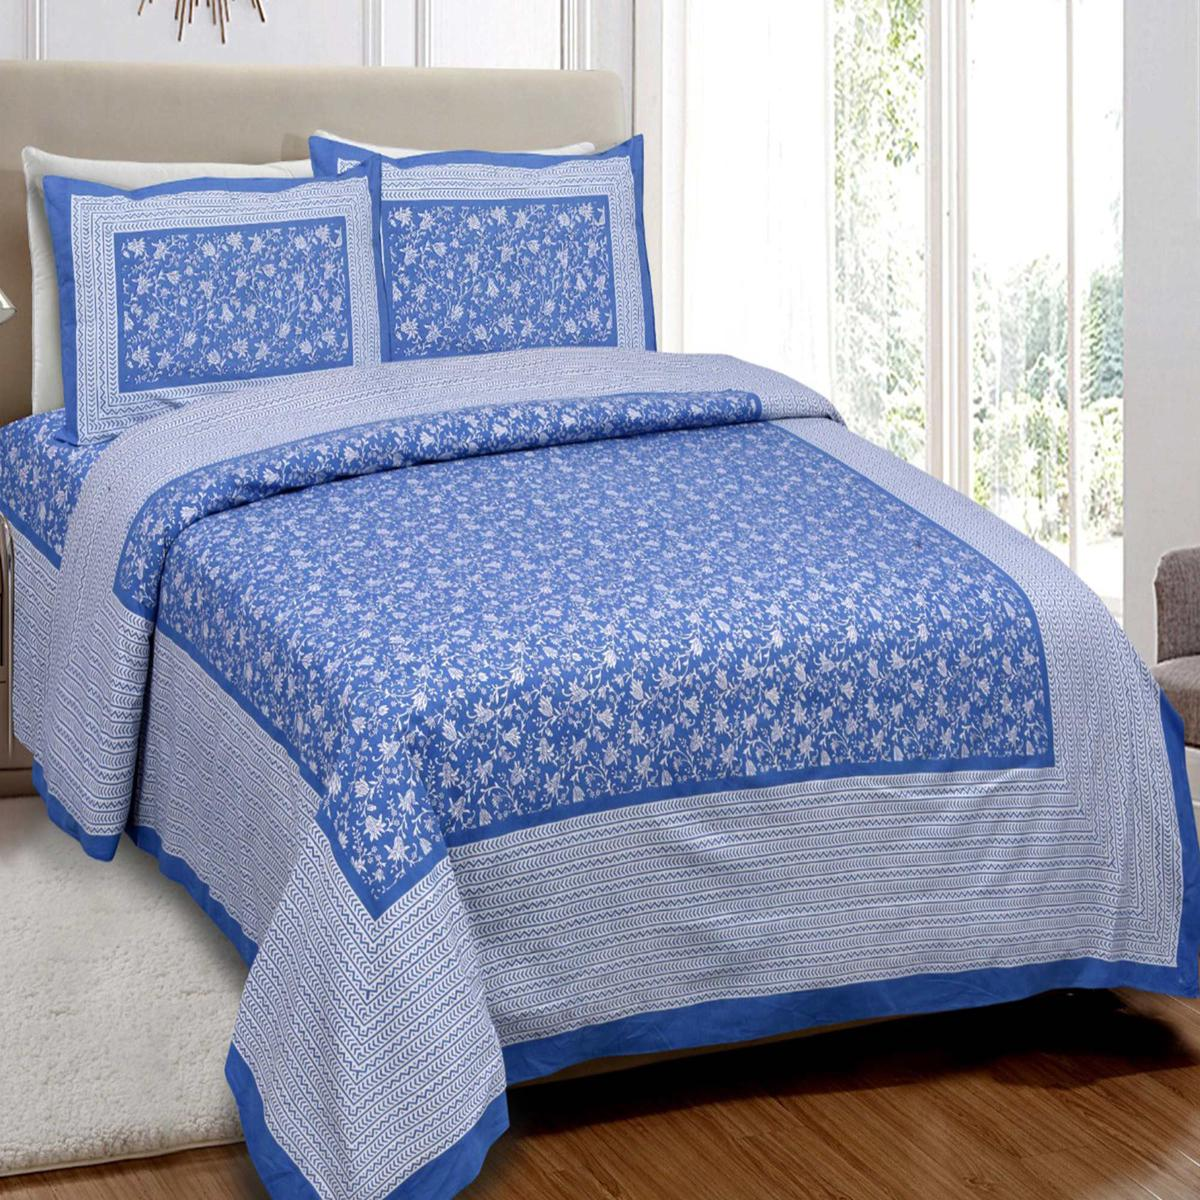 Diva Collection - Blue Colored Printed Cotton King Bedsheet with 2 Pillow Cover